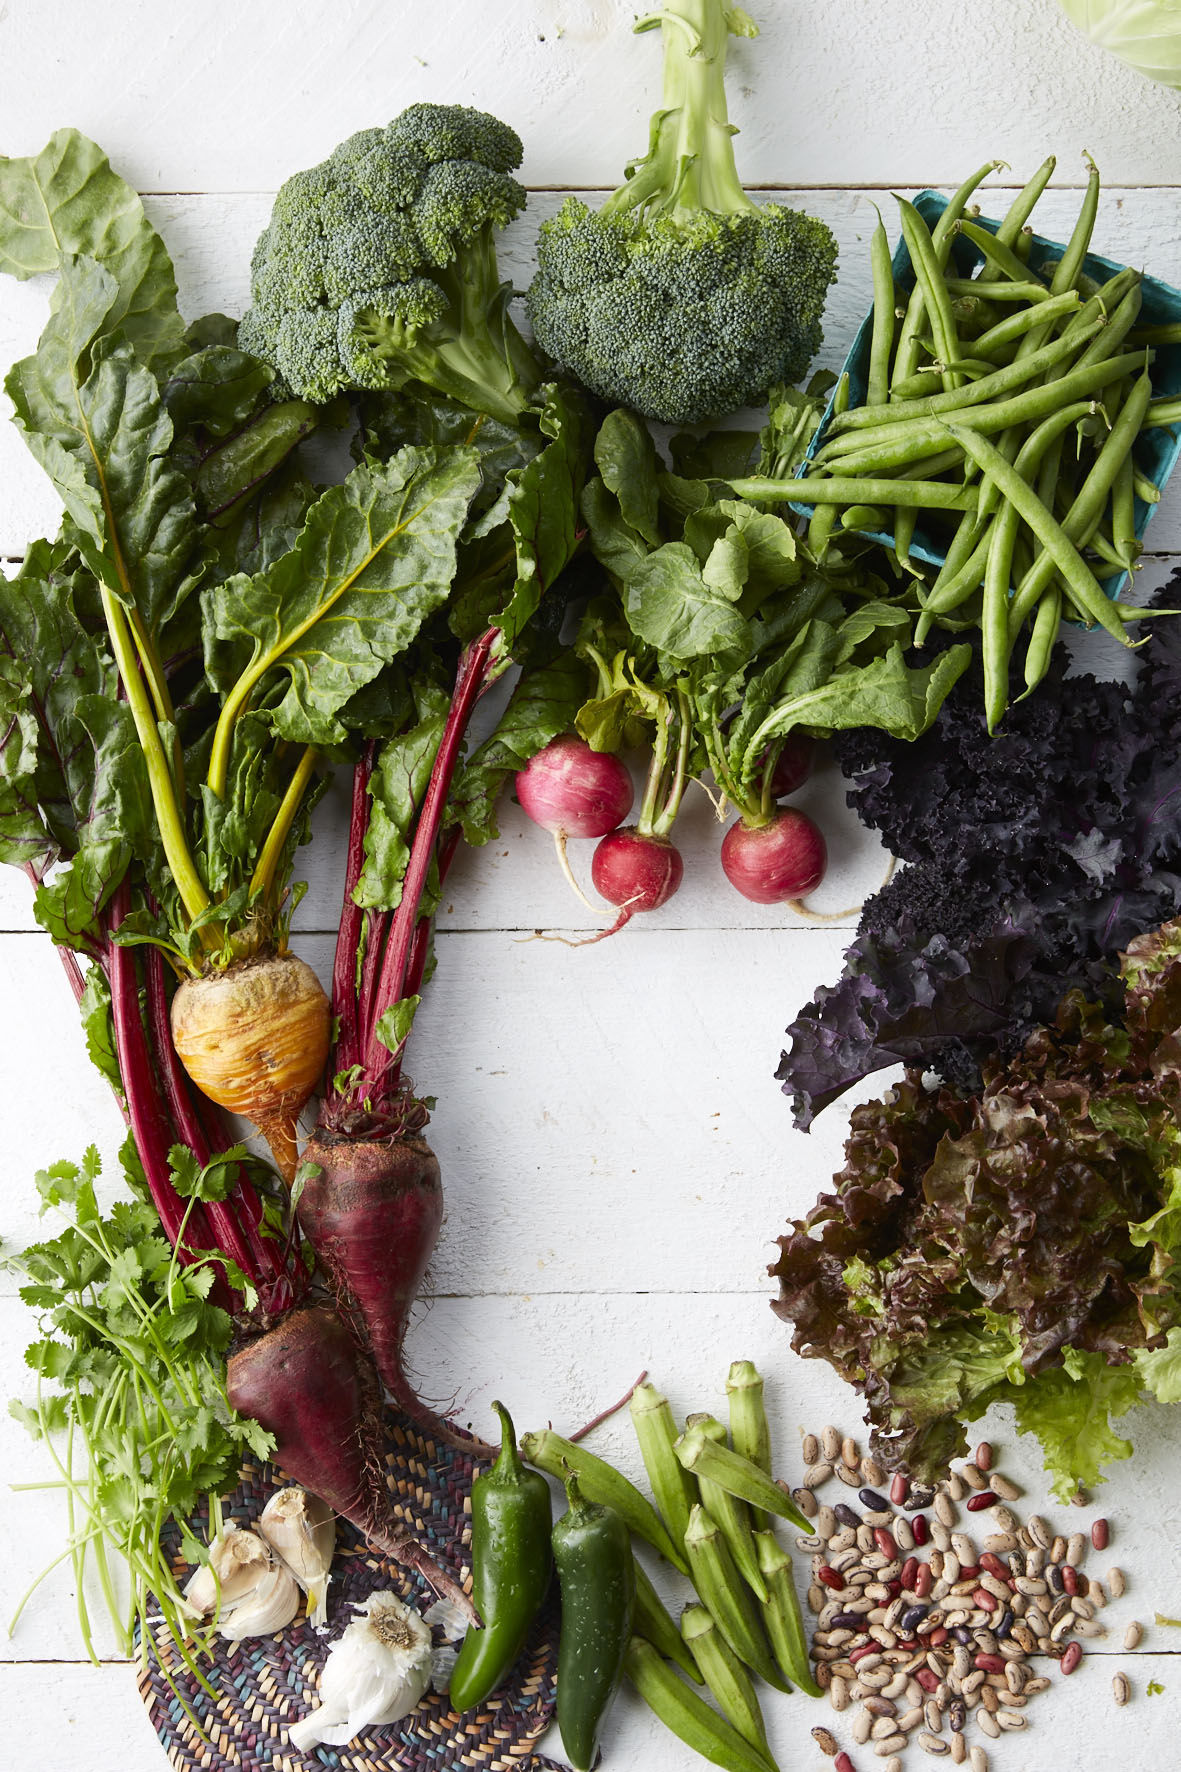 Abundant box of vegetables from the Global Greens CSA in Des Moines.